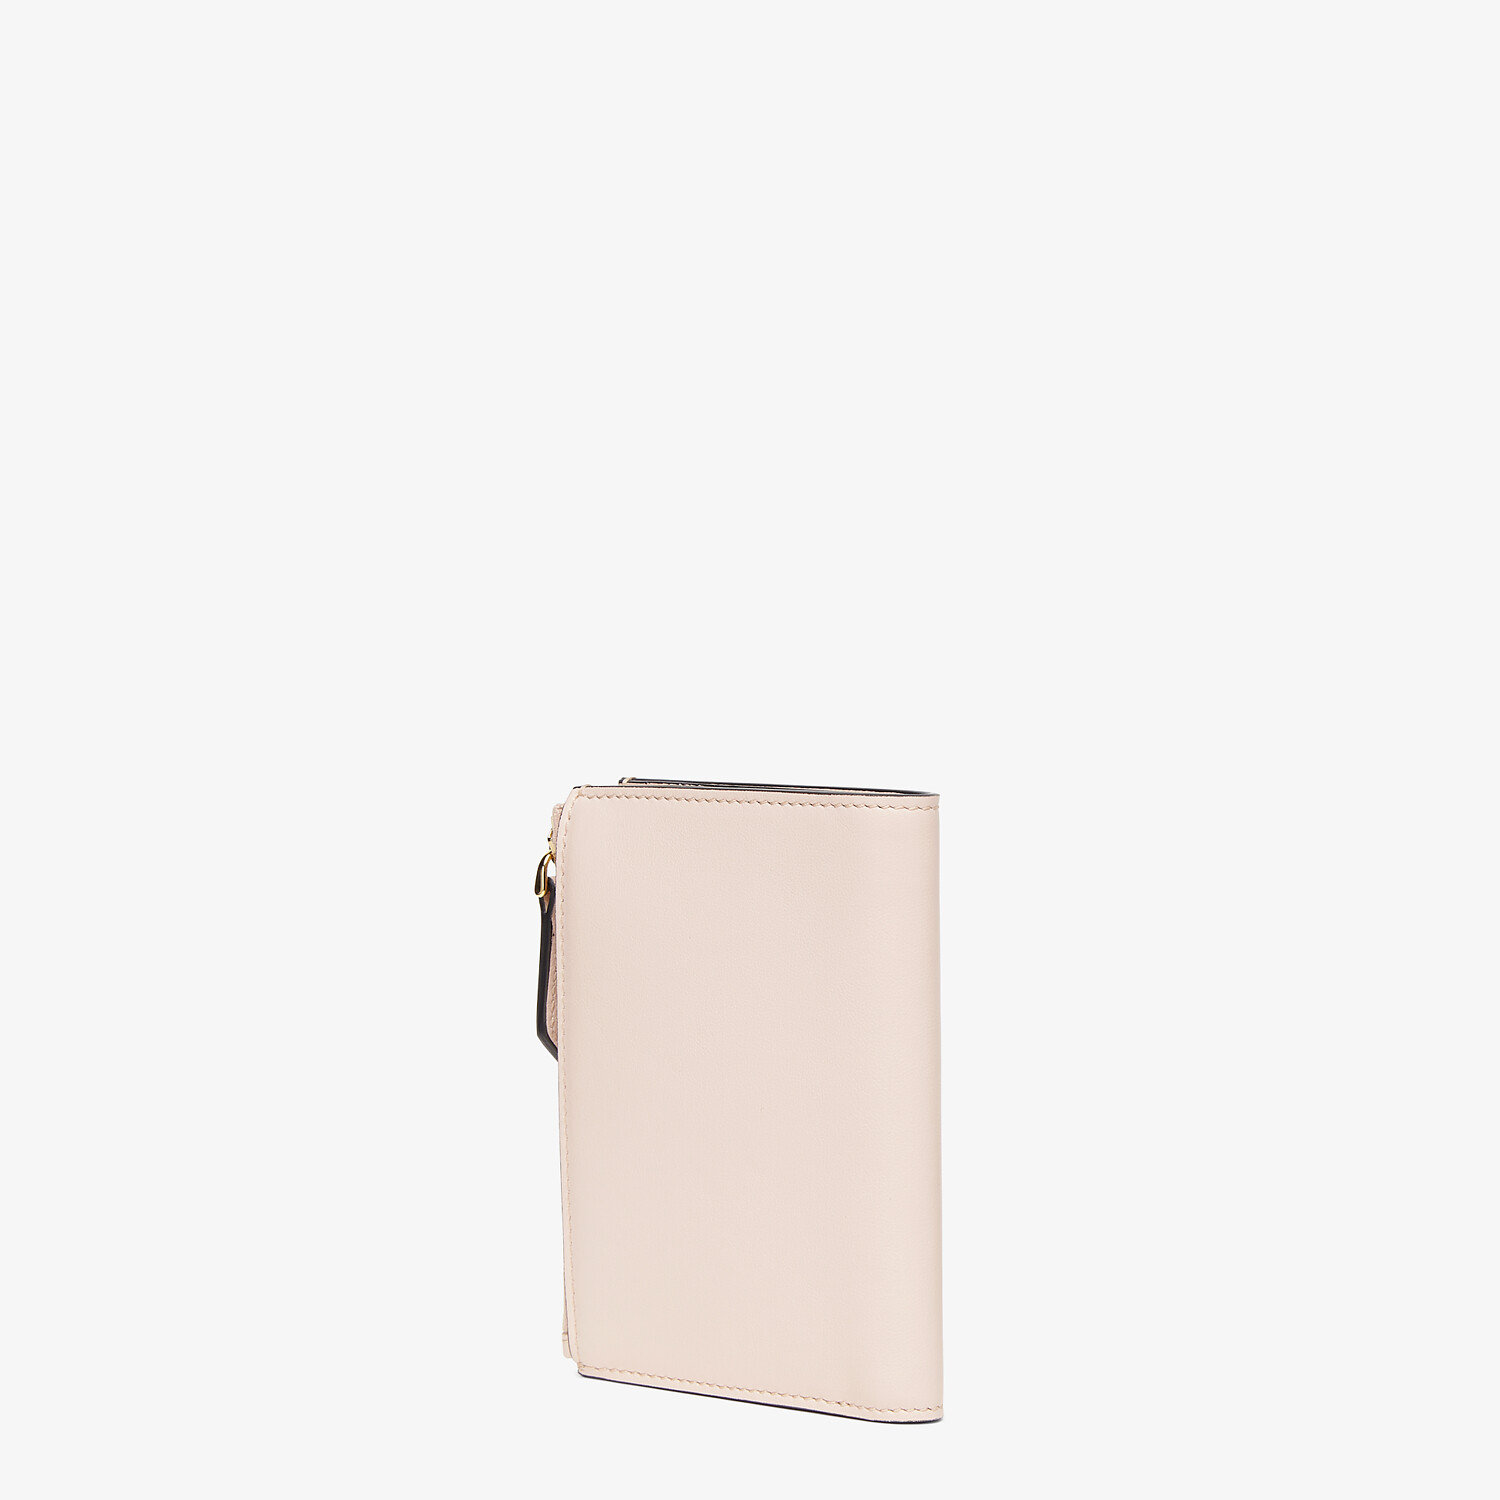 FENDI MEDIUM WALLET - Pink leather wallet - view 2 detail